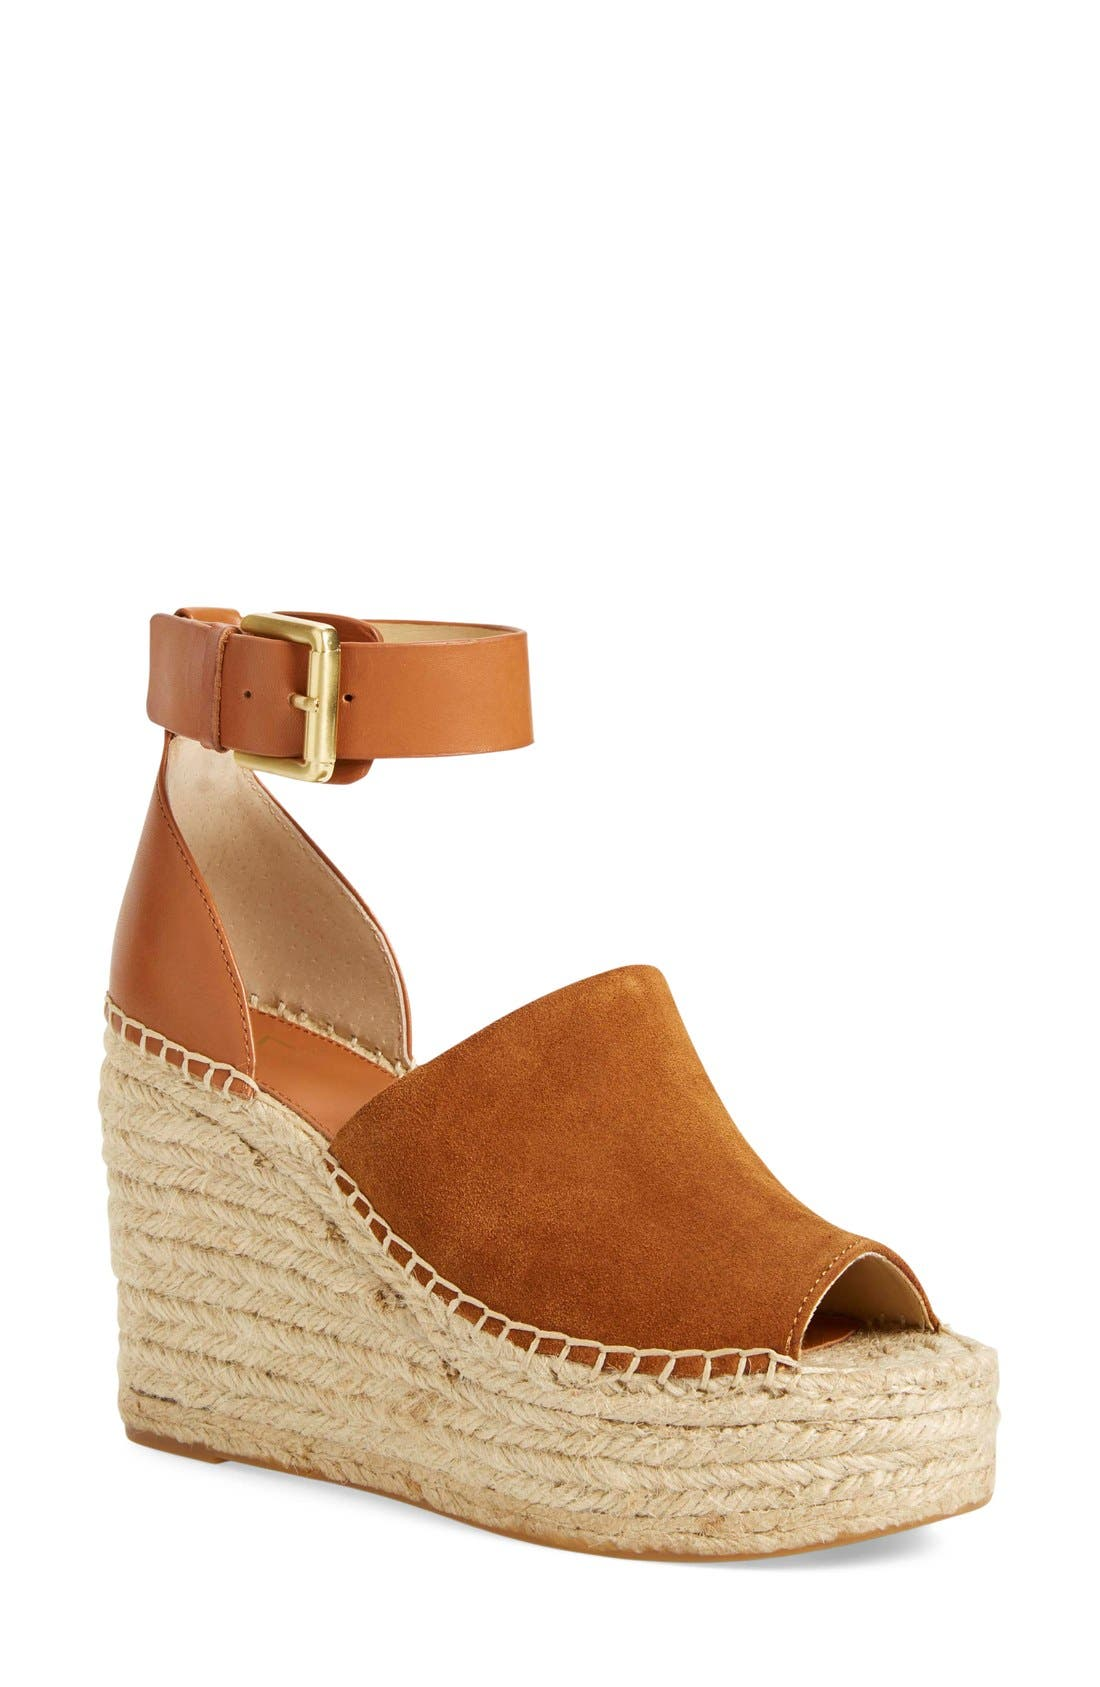 'Adalyn' Espadrille Wedge Sandal,                             Main thumbnail 1, color,                             Tan/ Saddle